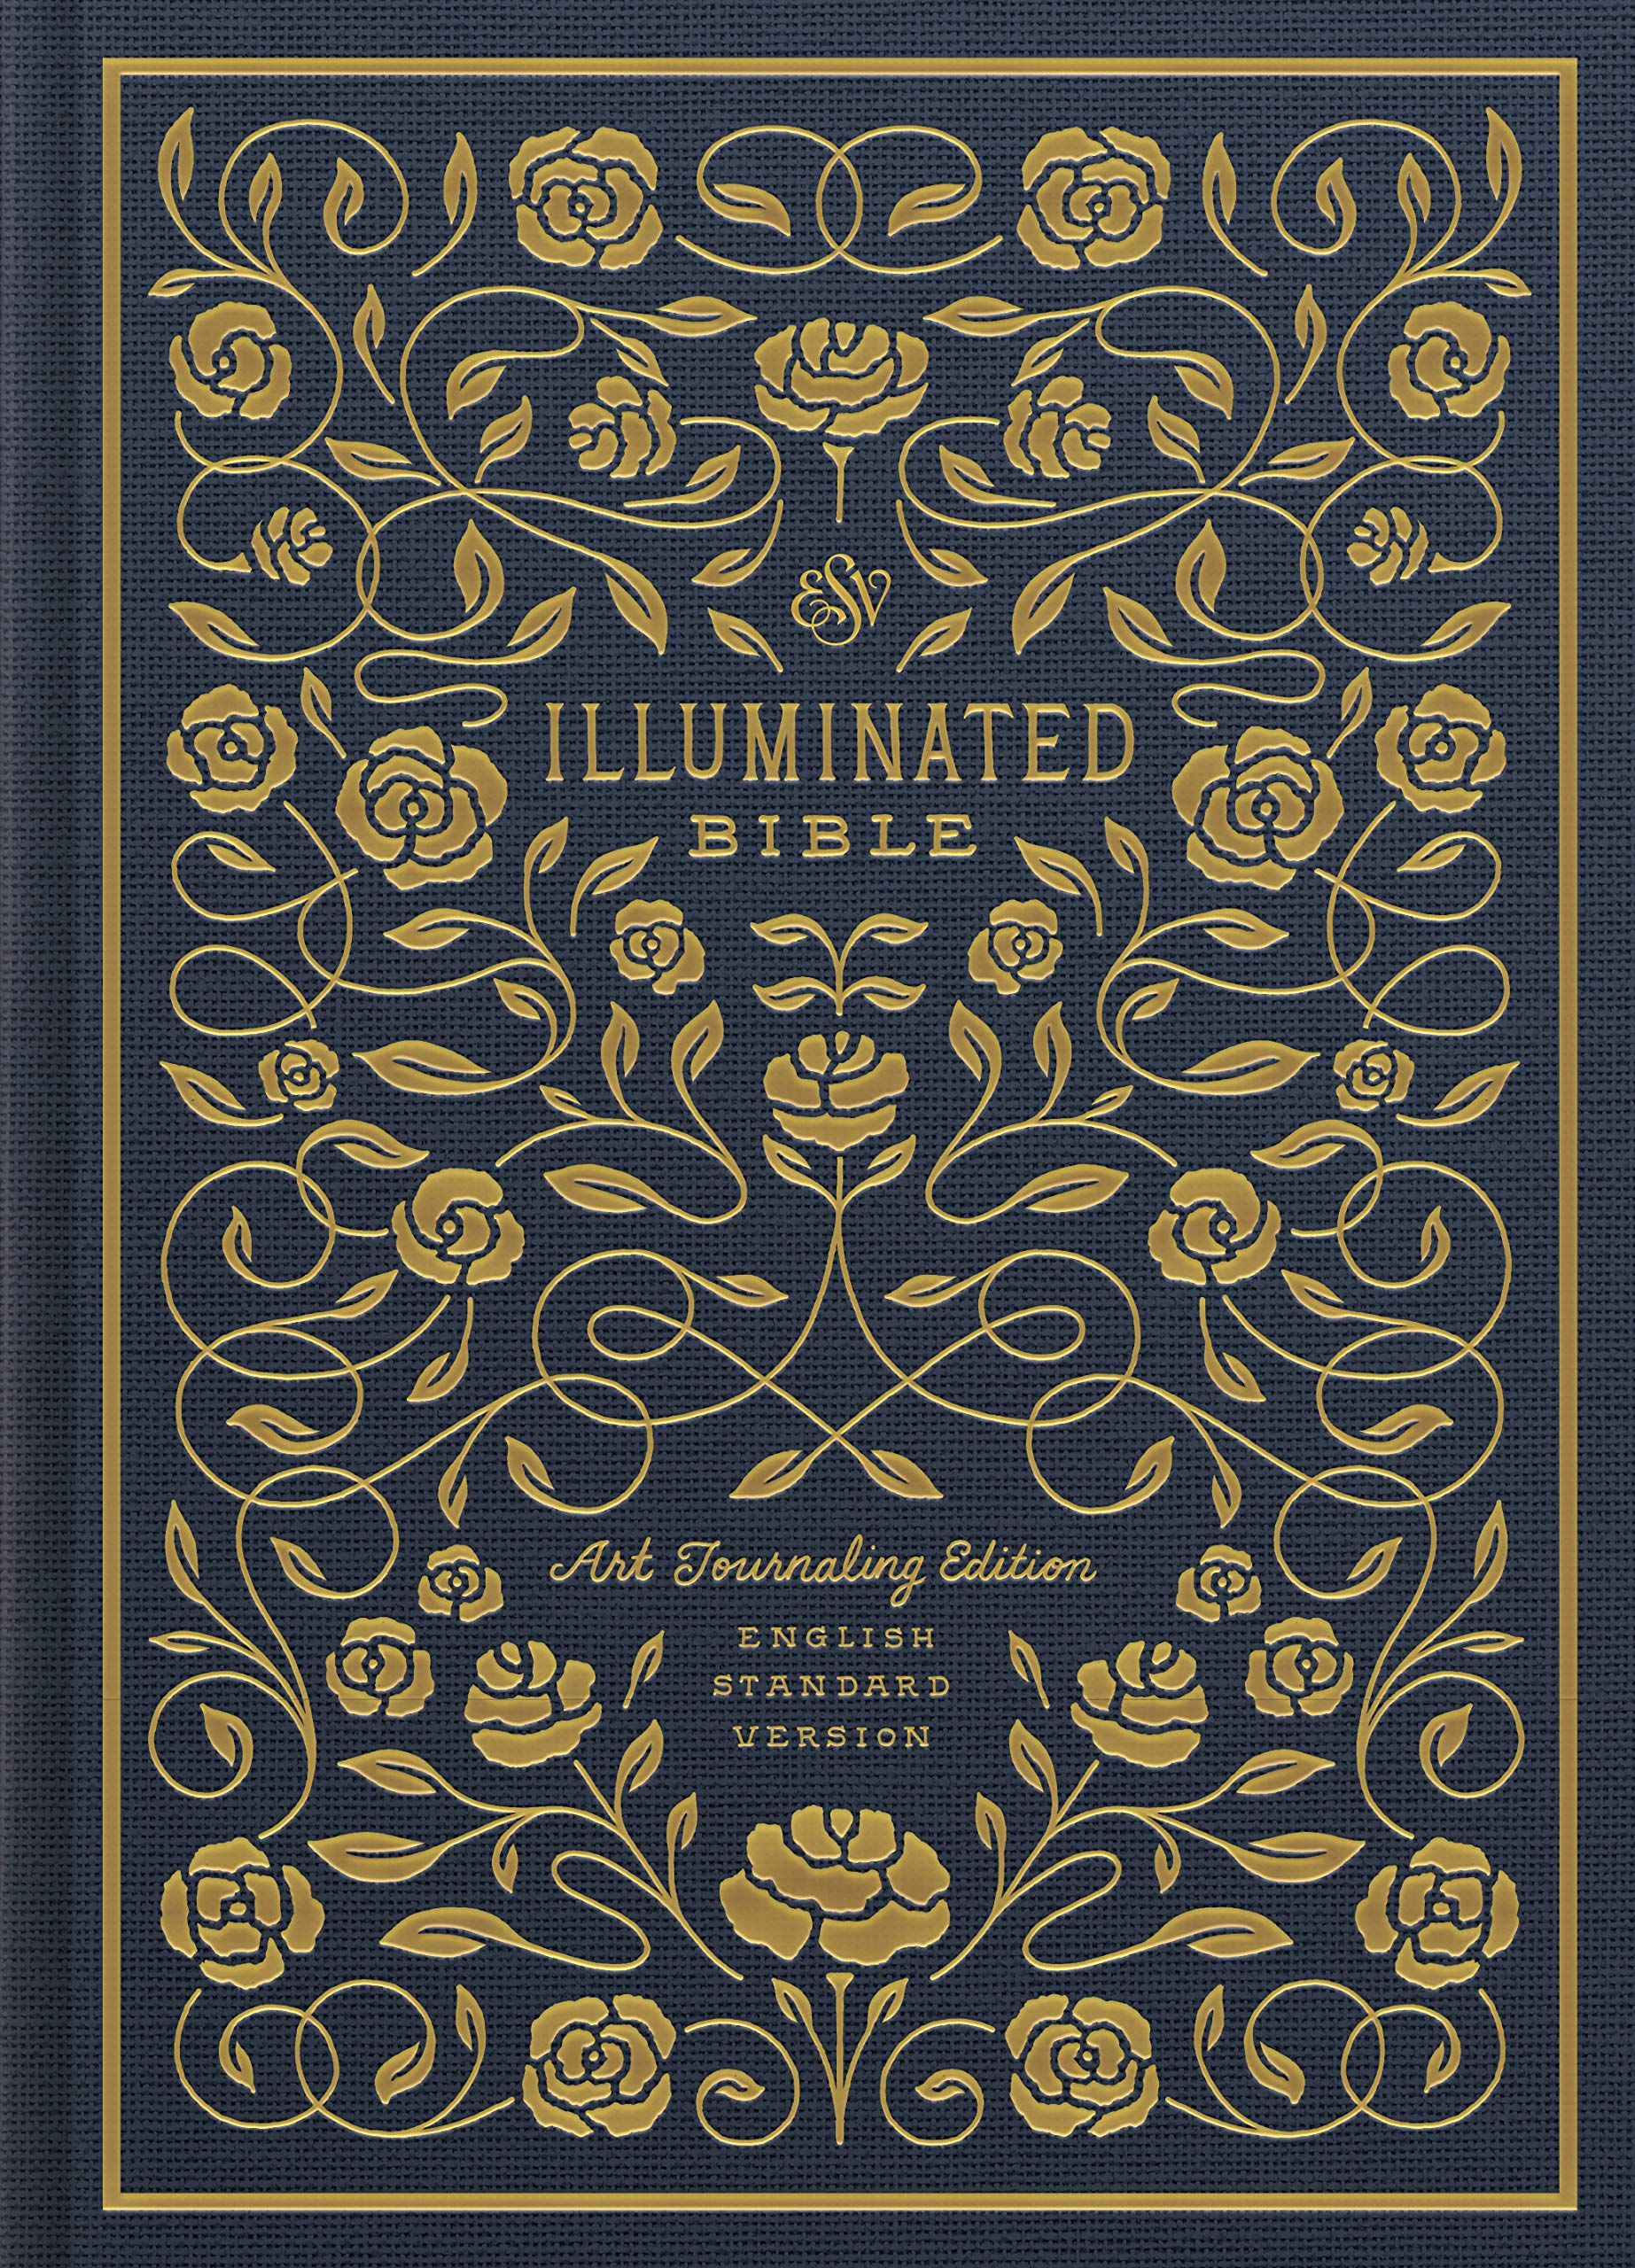 ESV Illuminated Bible, Art Journaling Edition (Cloth over Board ...